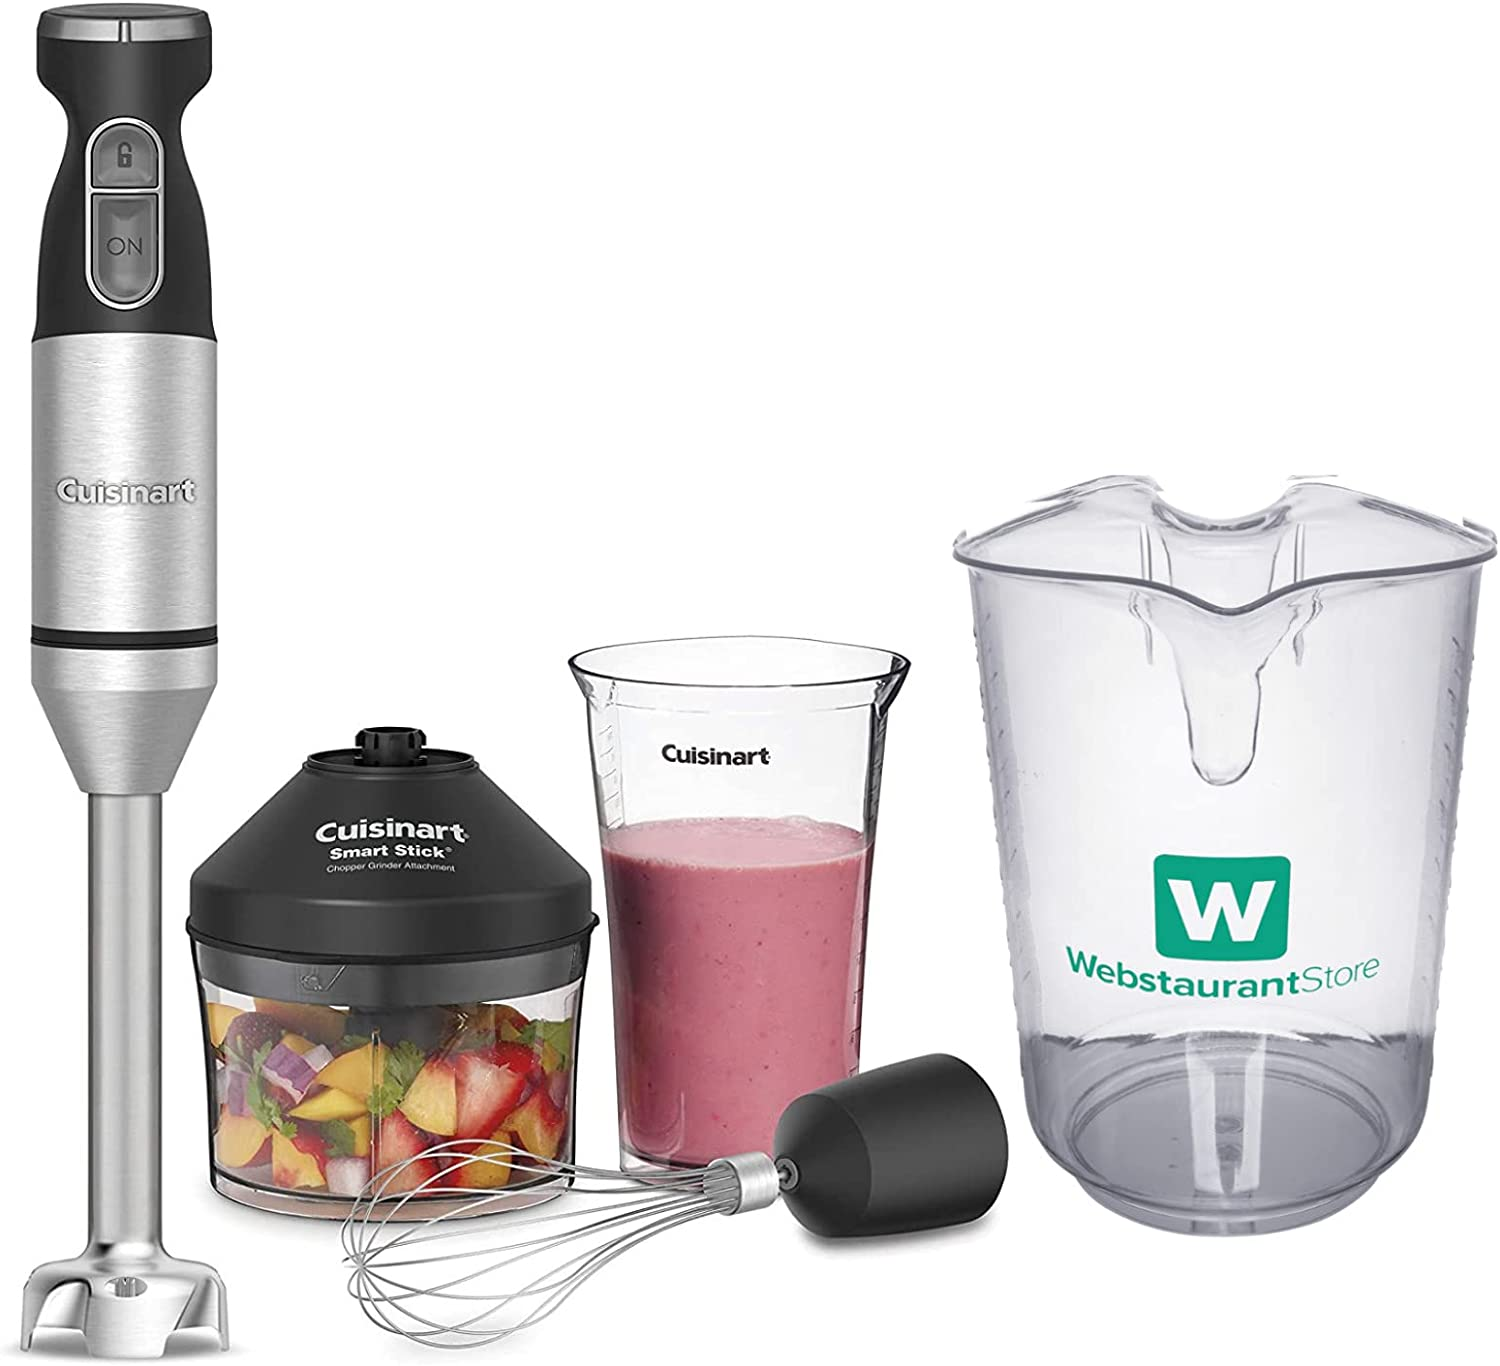 Cuisinart CSB-179 Stainless Steel Smart Stick Variable-Speed Hand Blender with 4 Qt. (16 Cups) Polycarbonate Measuring Cup Bundle (2 Items)